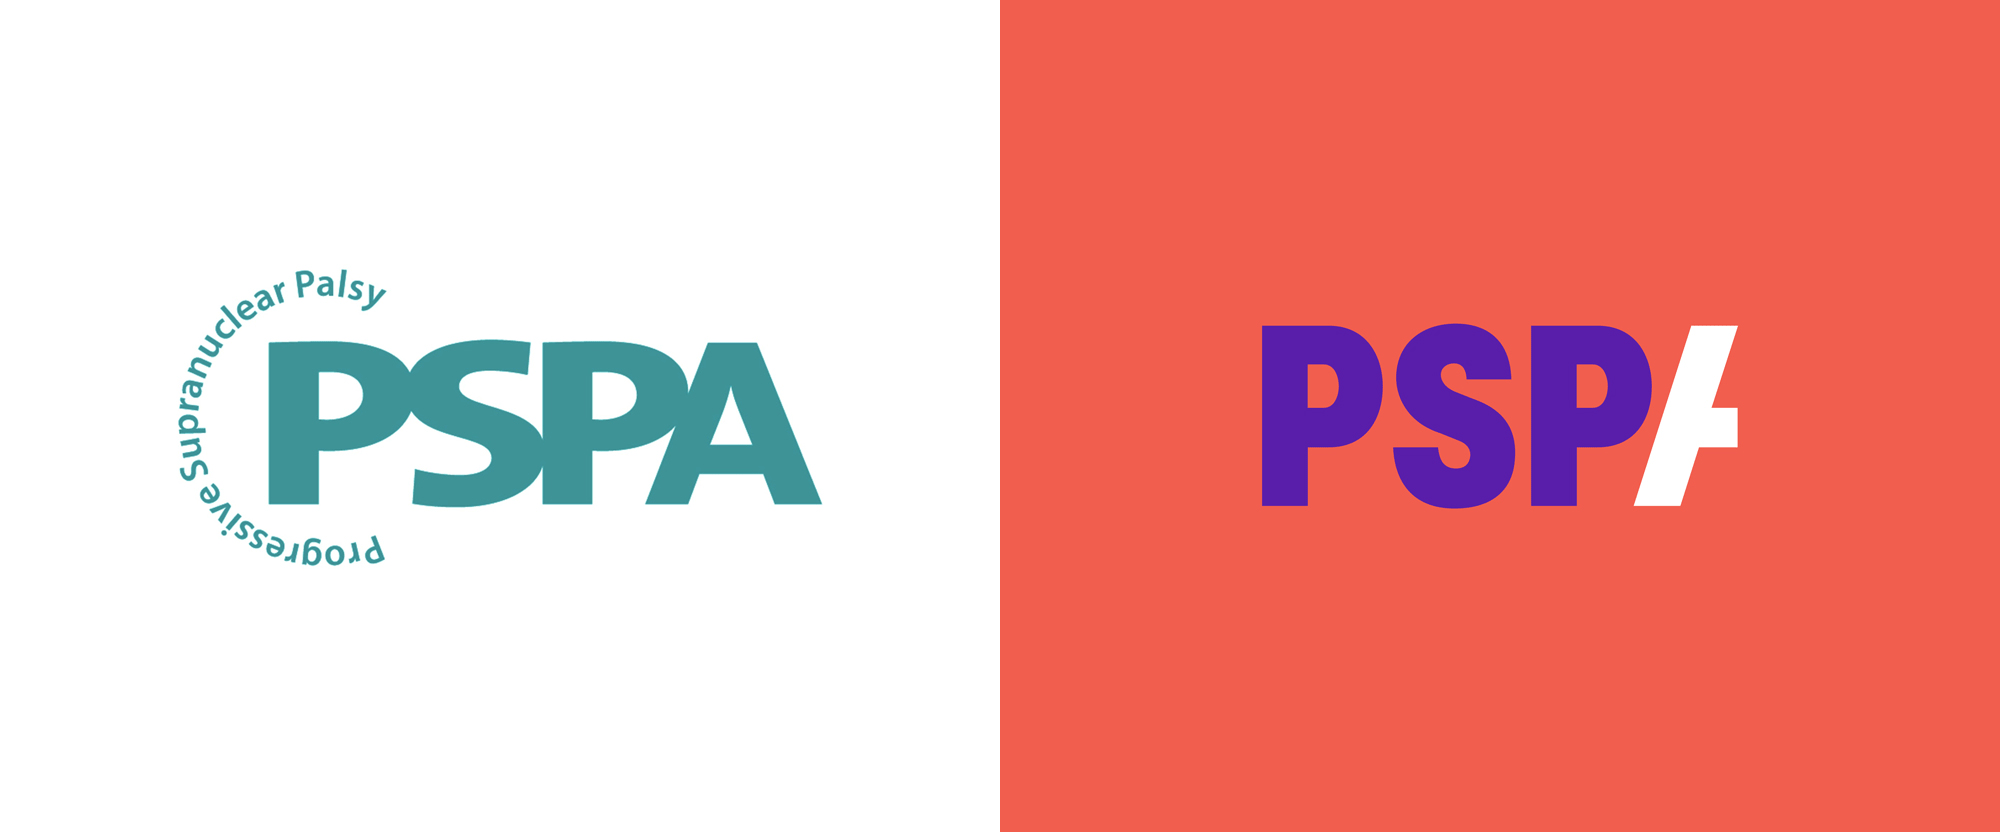 New Logo and Identity for Progressive Supranuclear Palsy Association  by Brandpie